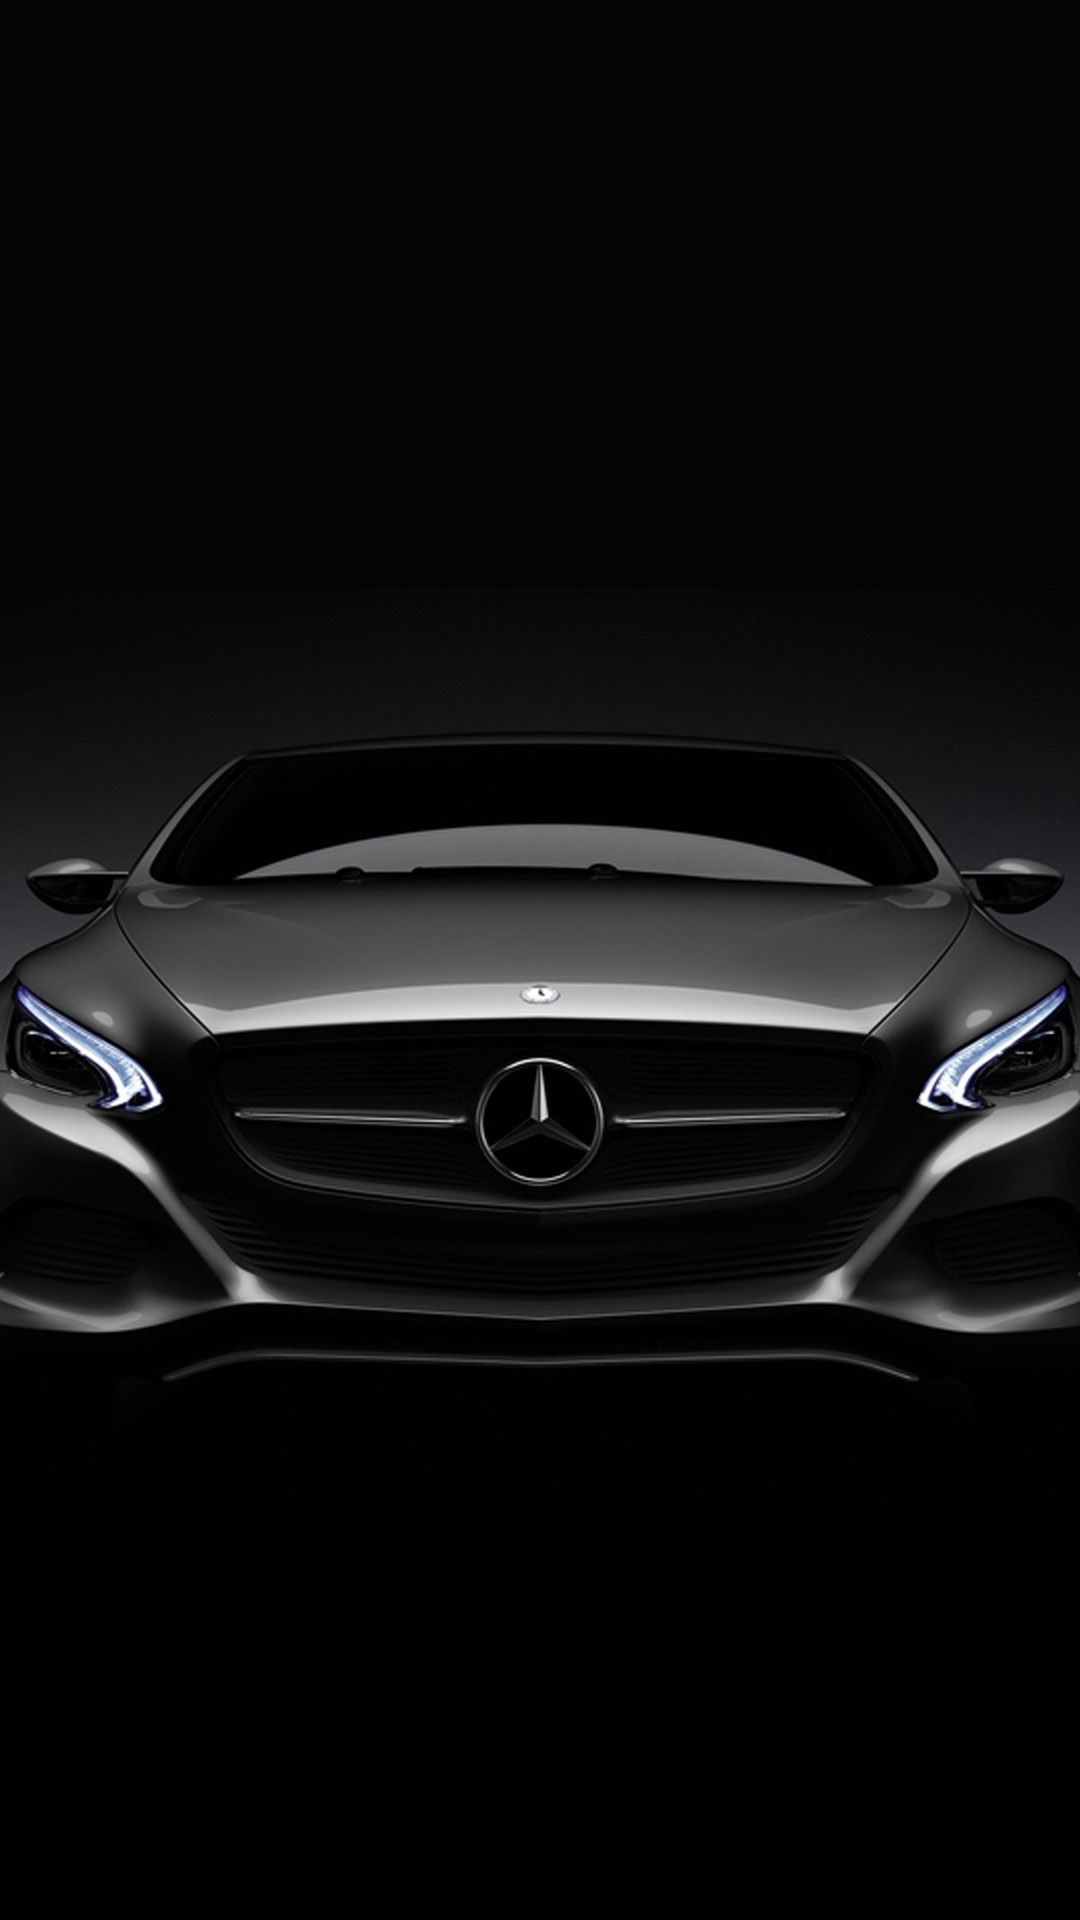 44 Best Free Mercedes Benz Iphone Wallpapers Wallpaperaccess